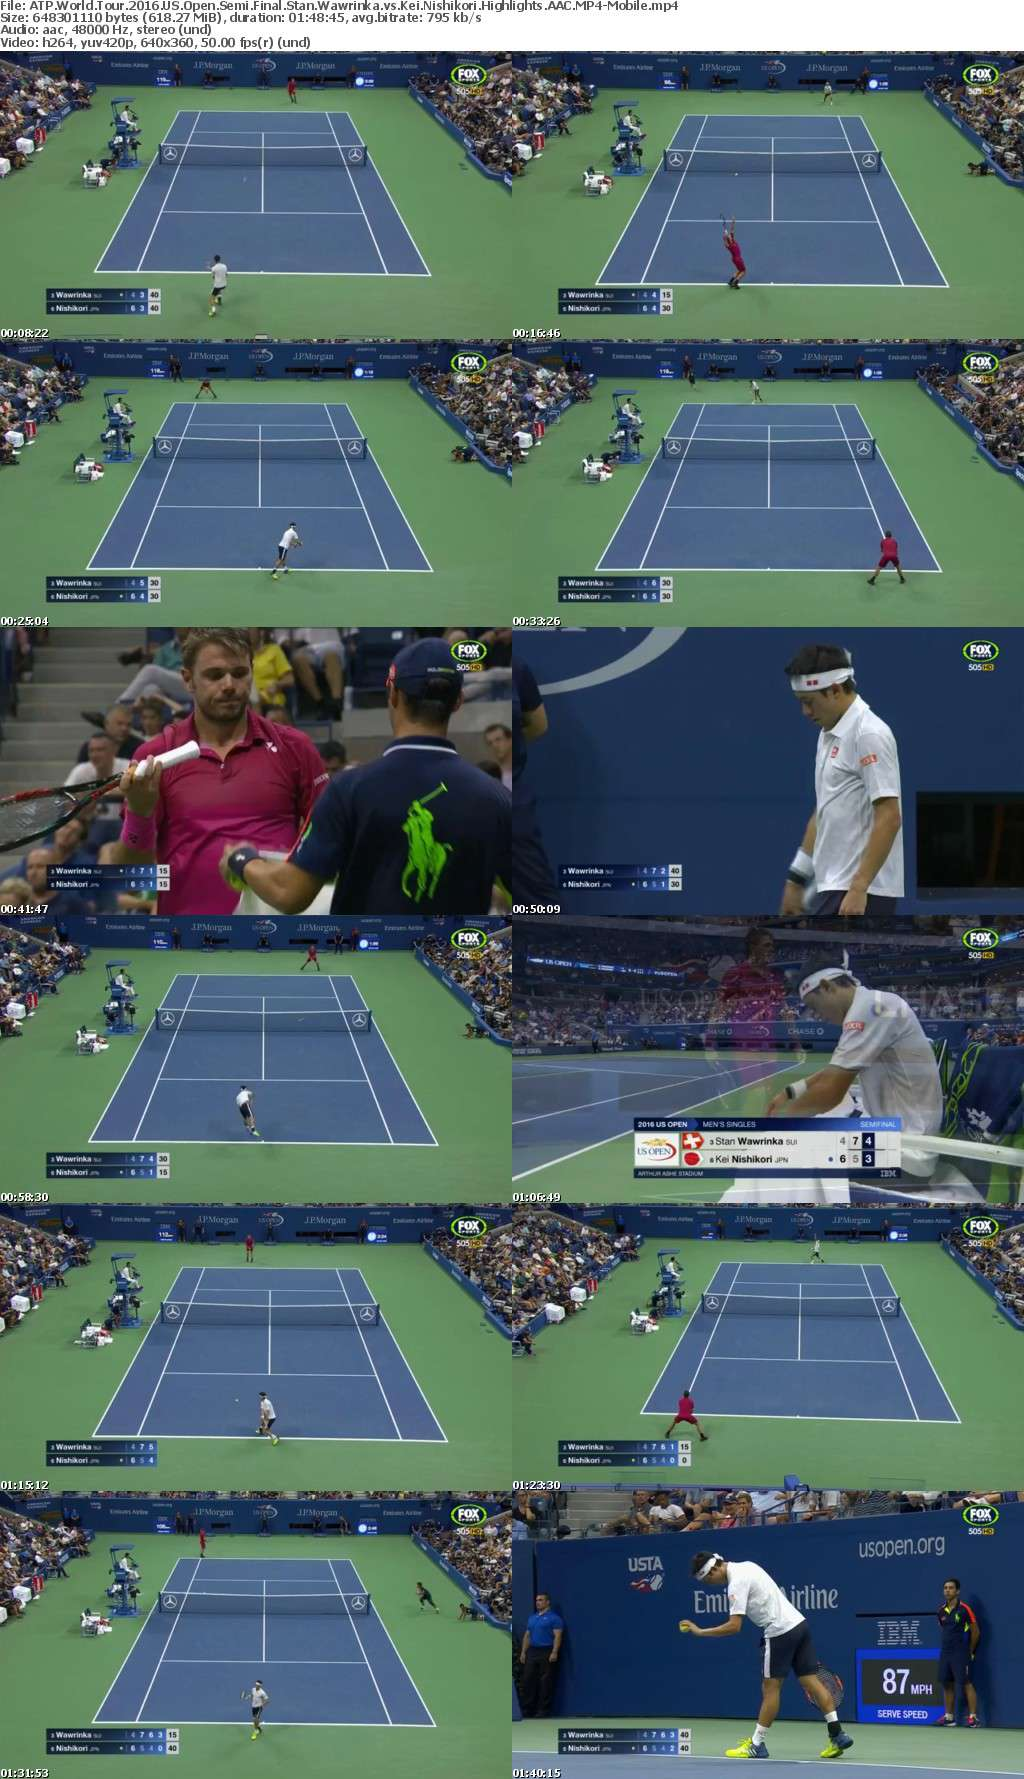 ATP World Tour 2016 US Open Semi Final Stan Wawrinka vs Kei Nishikori Highlights AAC-Mobile